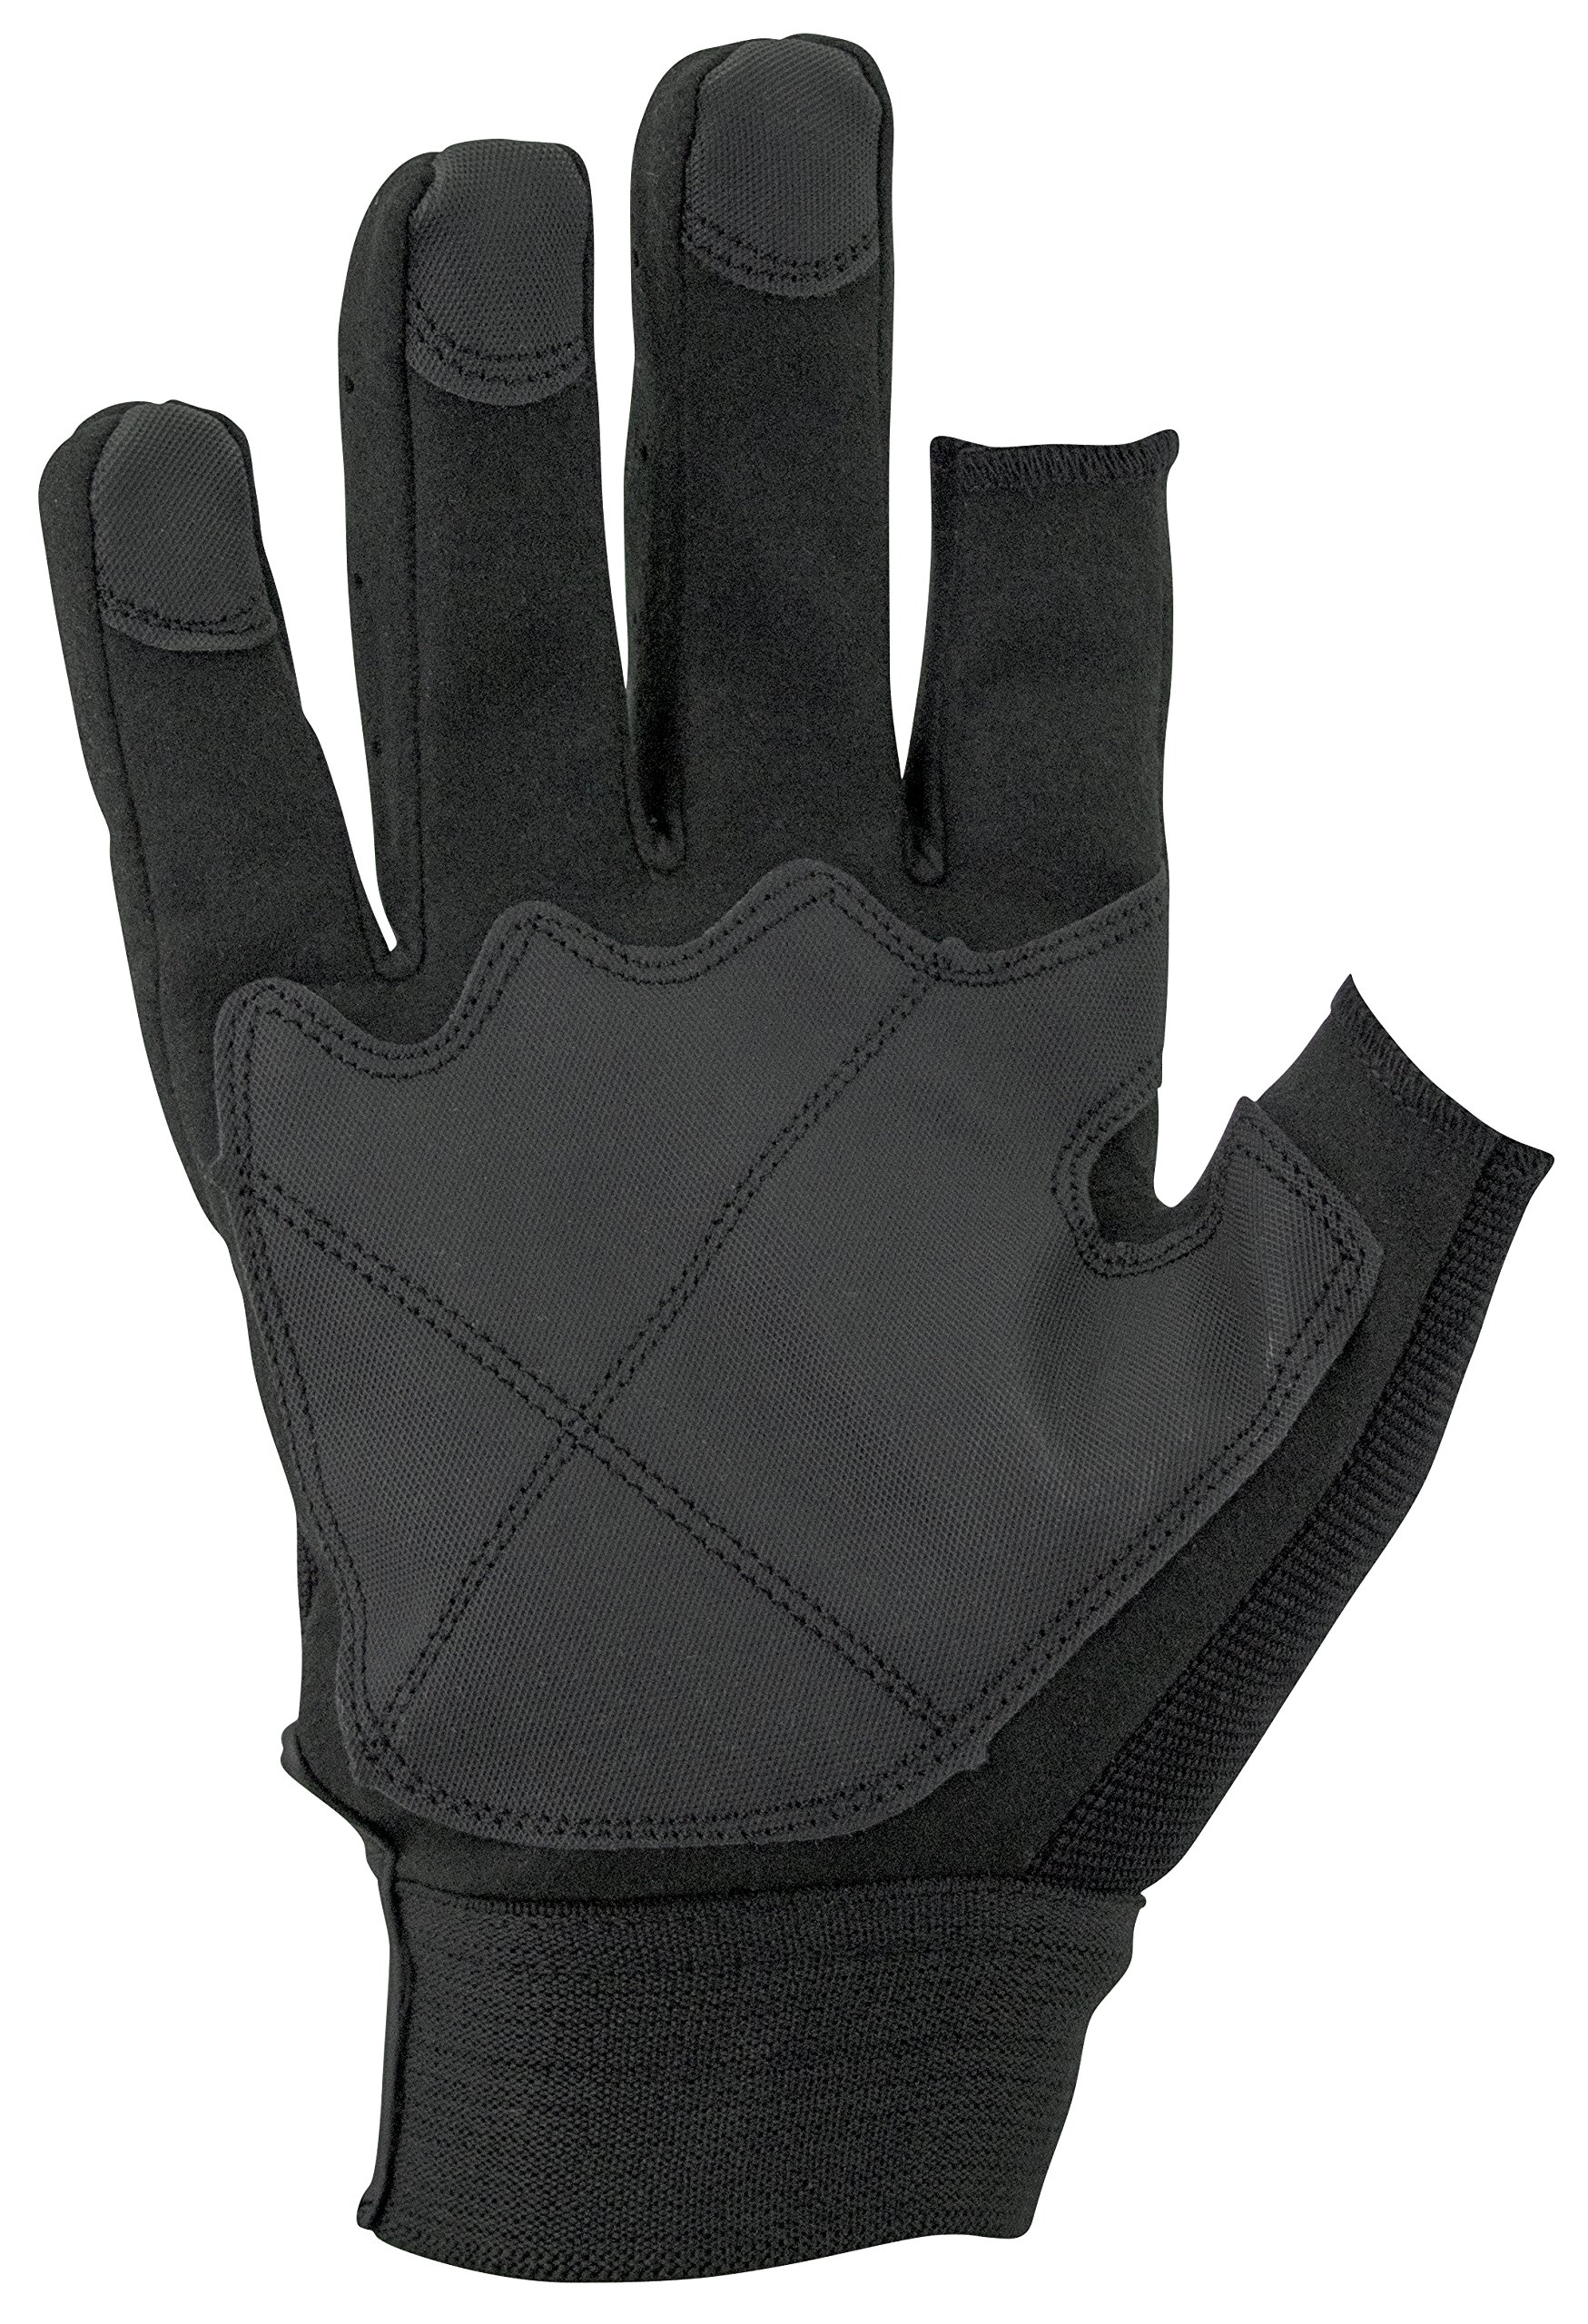 SAS Safety Corp. 6724-23 SAS Safety MX Impact Resistant Glove with Cut-Thumb and Index Finger, Large by SAS Safety (Image #2)